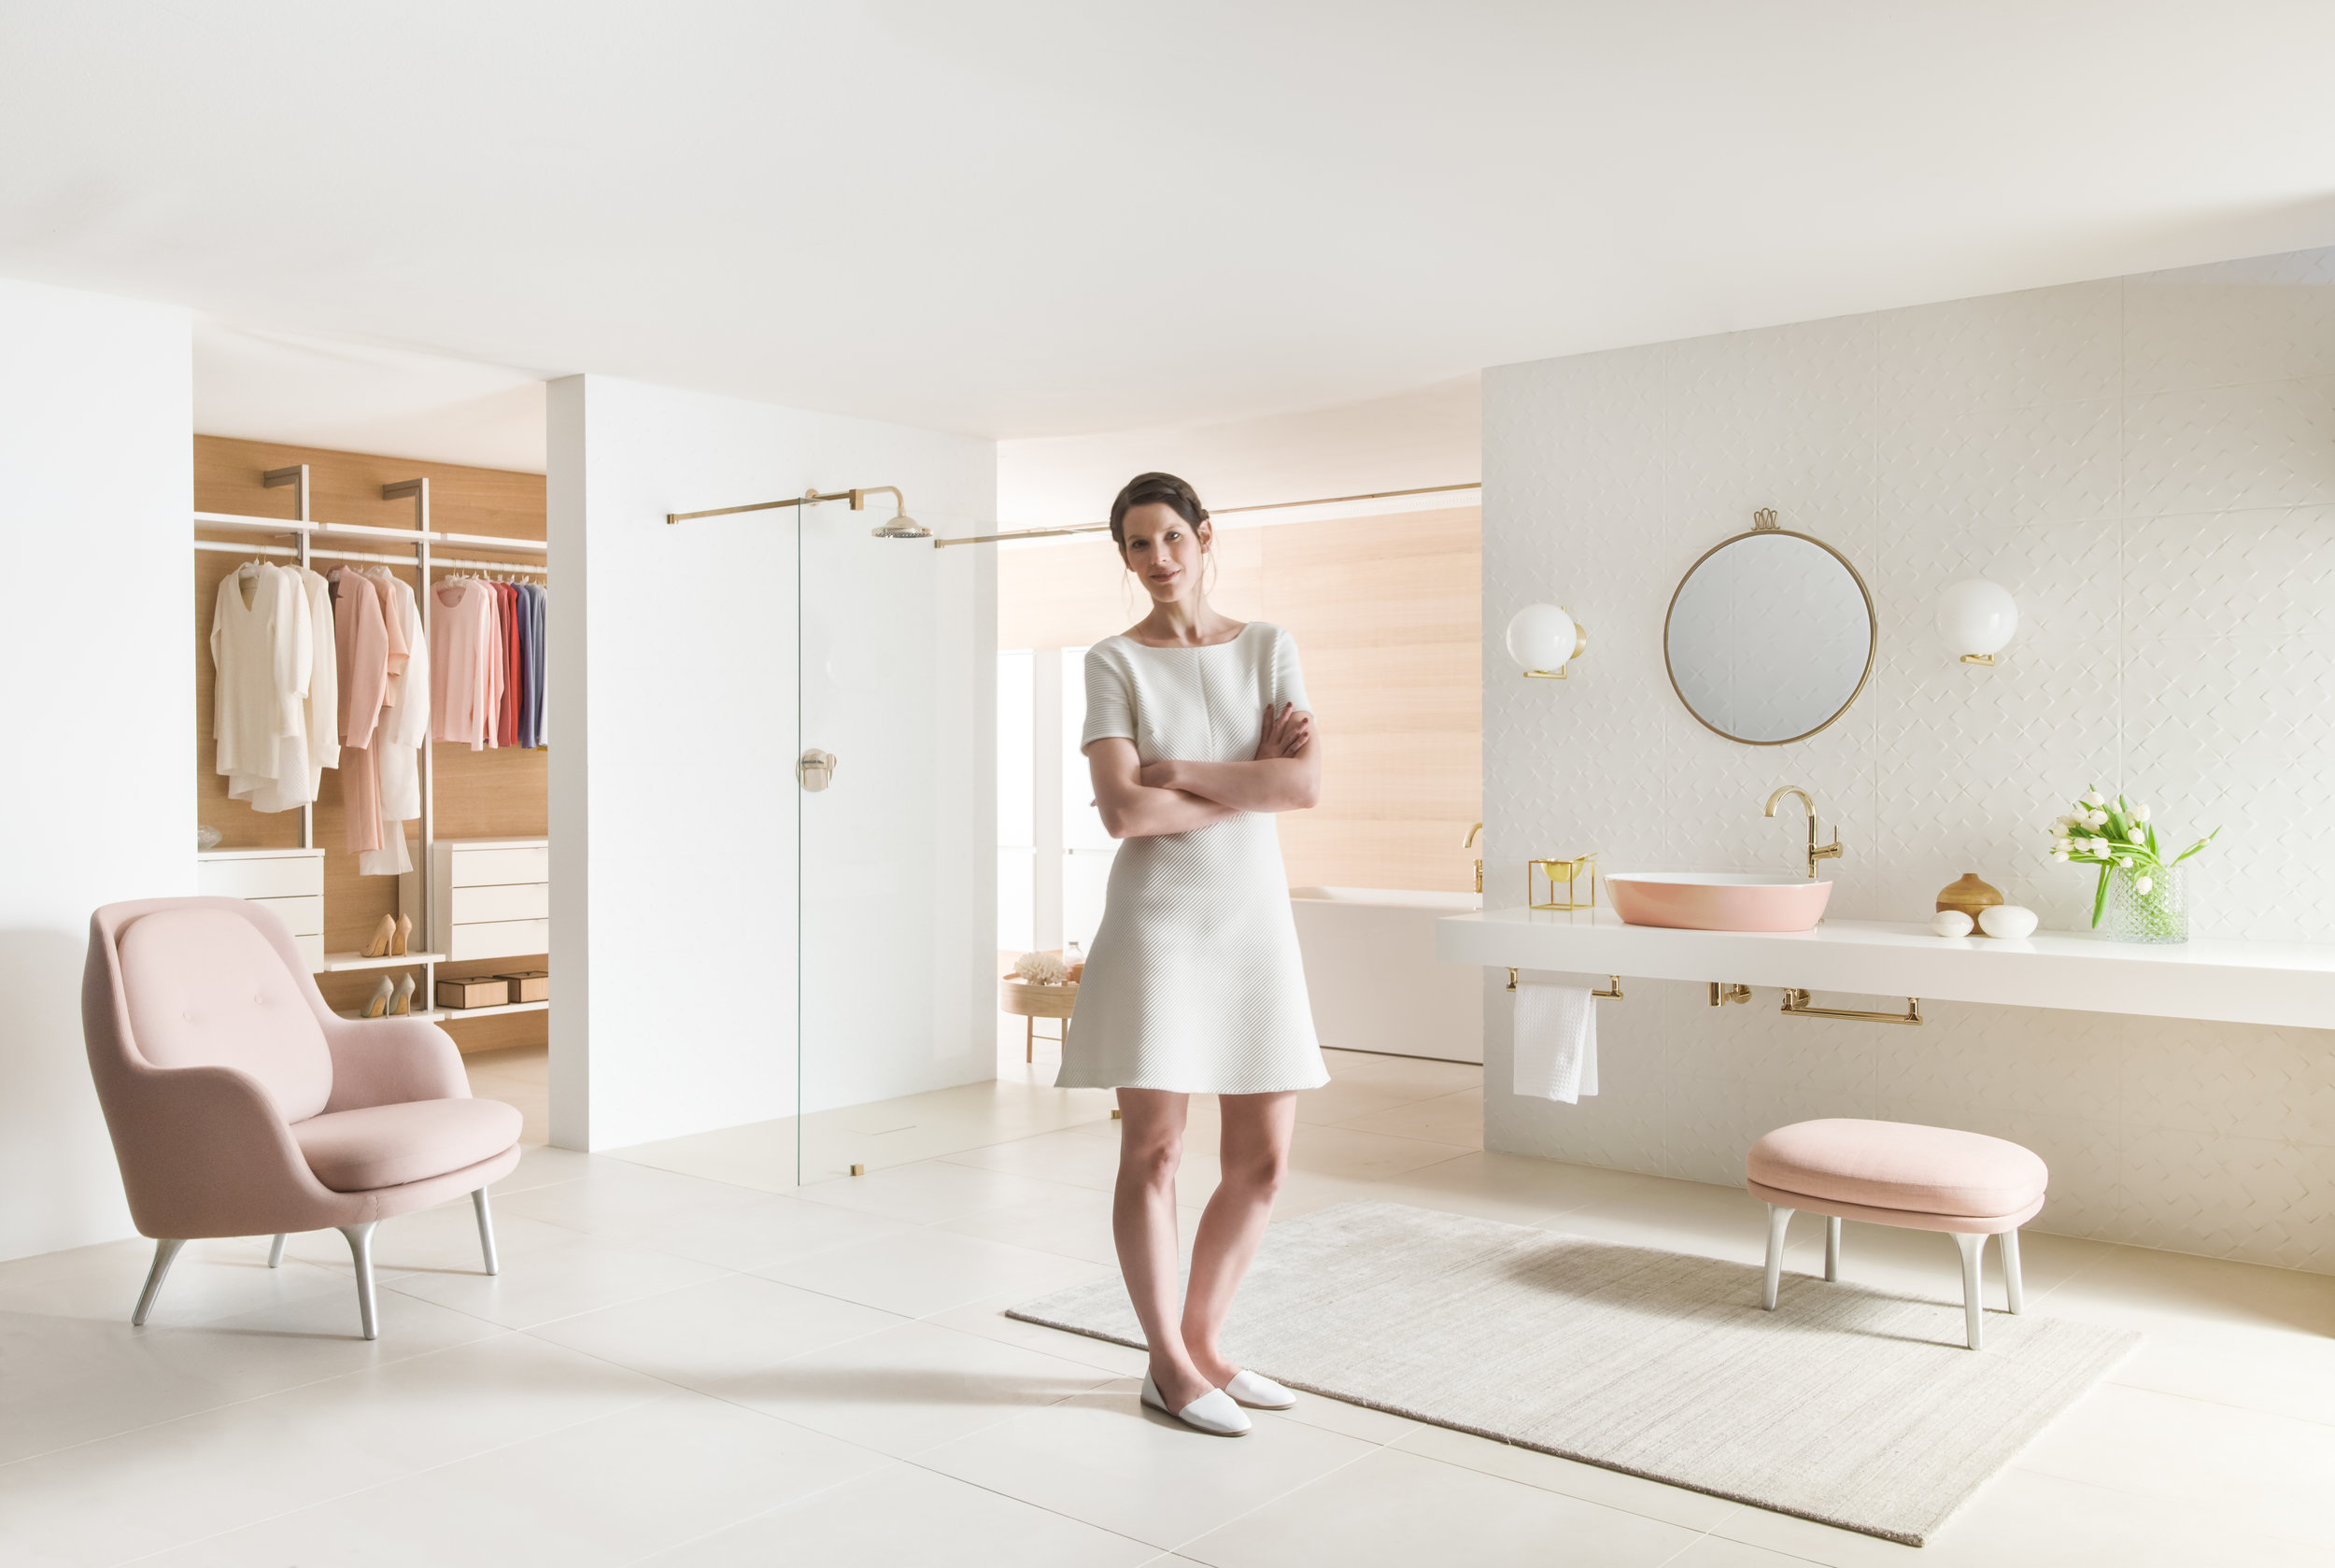 Gesa Hansen with one of her pink sinks for Villeroy & Boch